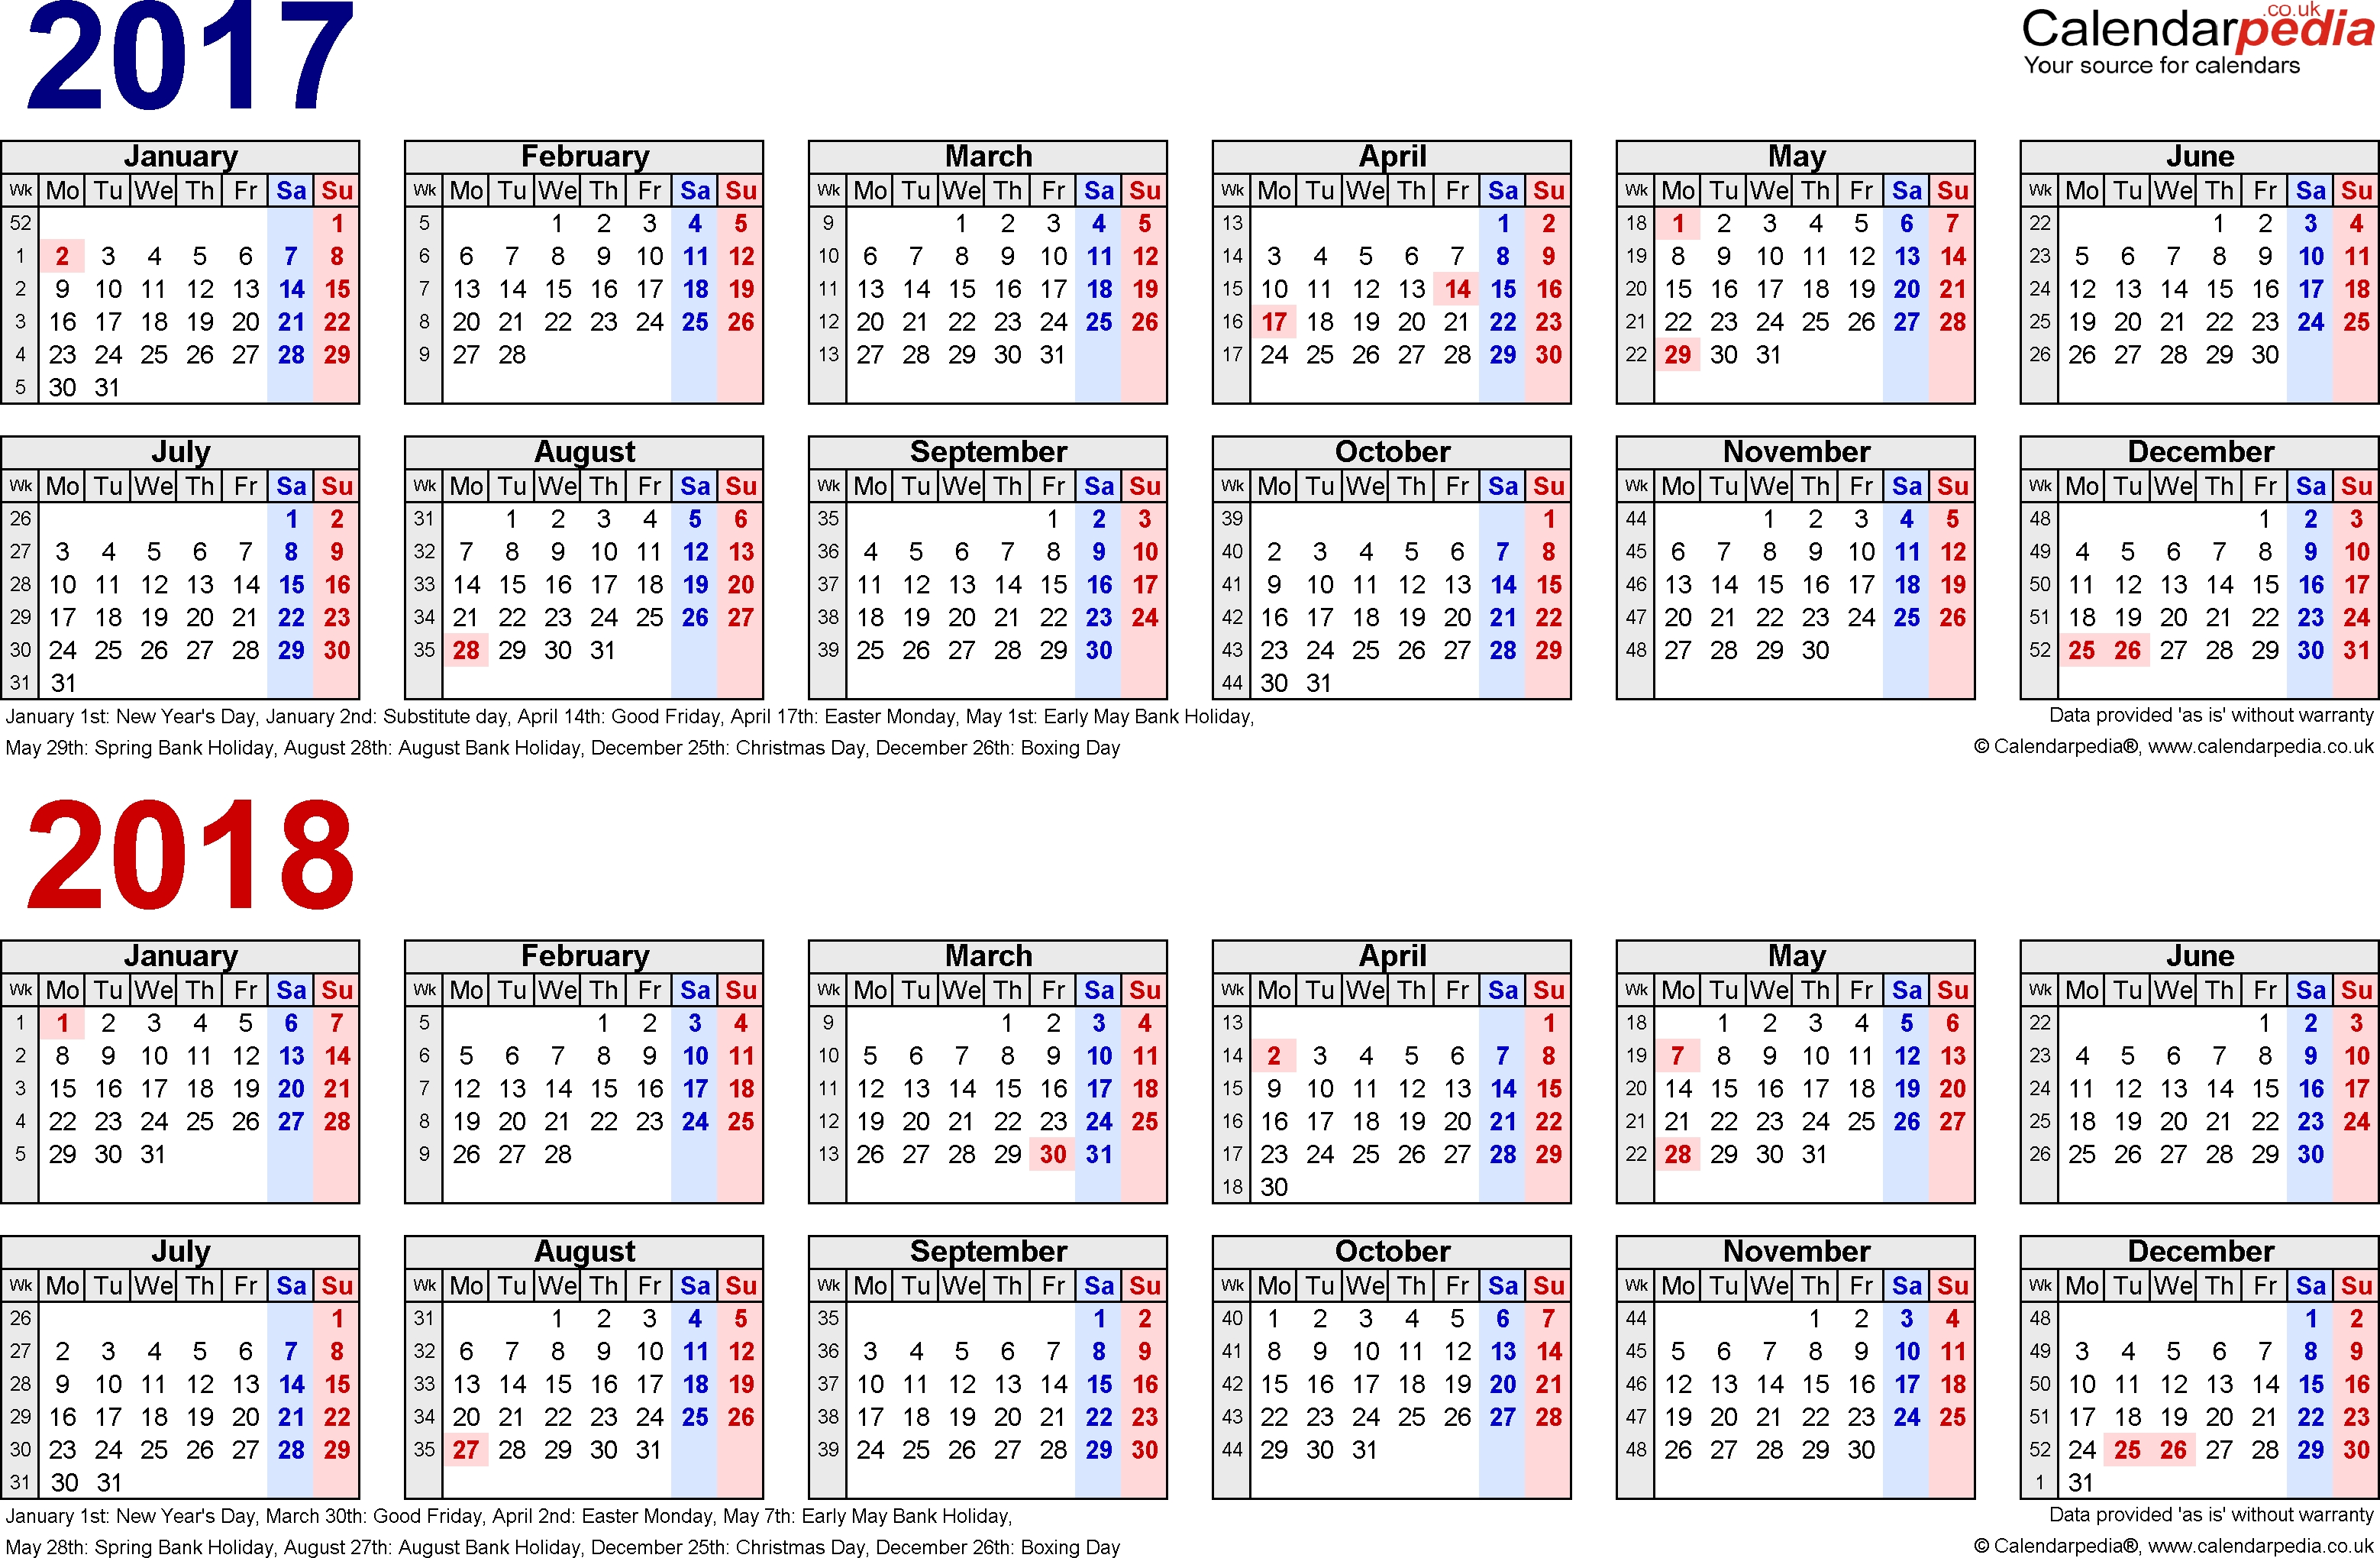 Two Year Calendars For 2017 & 2018 (Uk) For Word